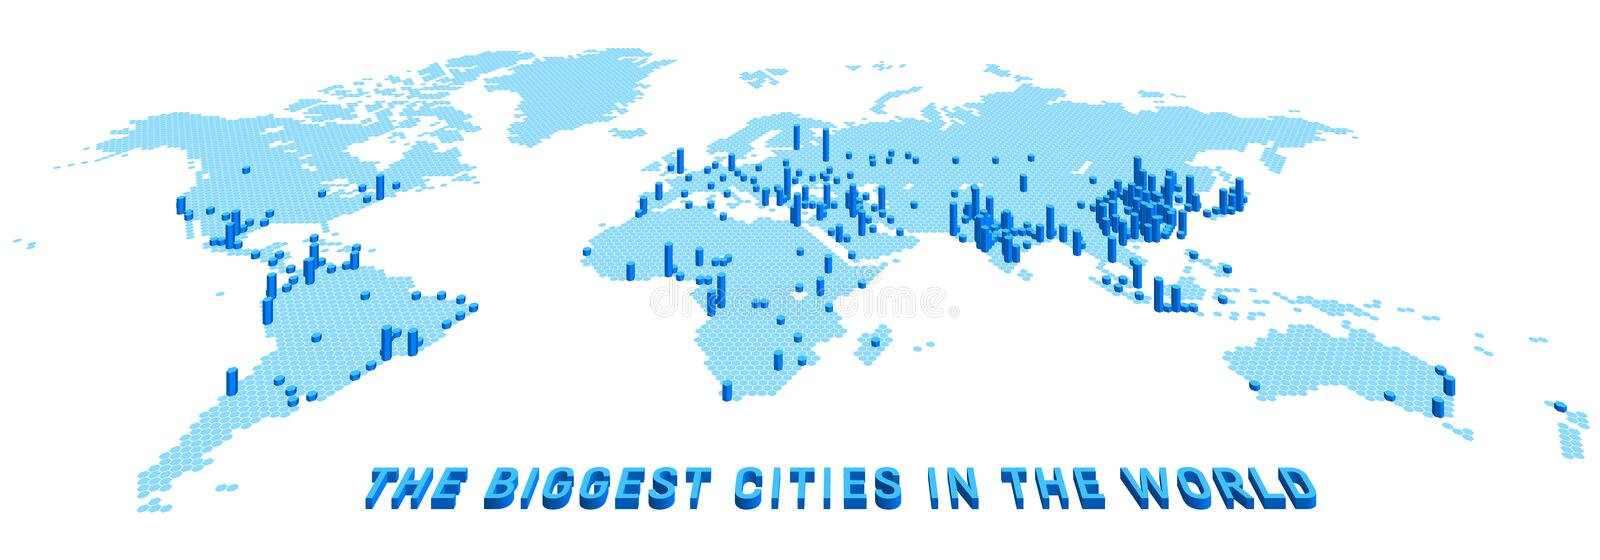 Vector world map stylized using hexagons with the biggest cities download vector world map stylized using hexagons with the biggest cities stock vector illustration of gumiabroncs Image collections